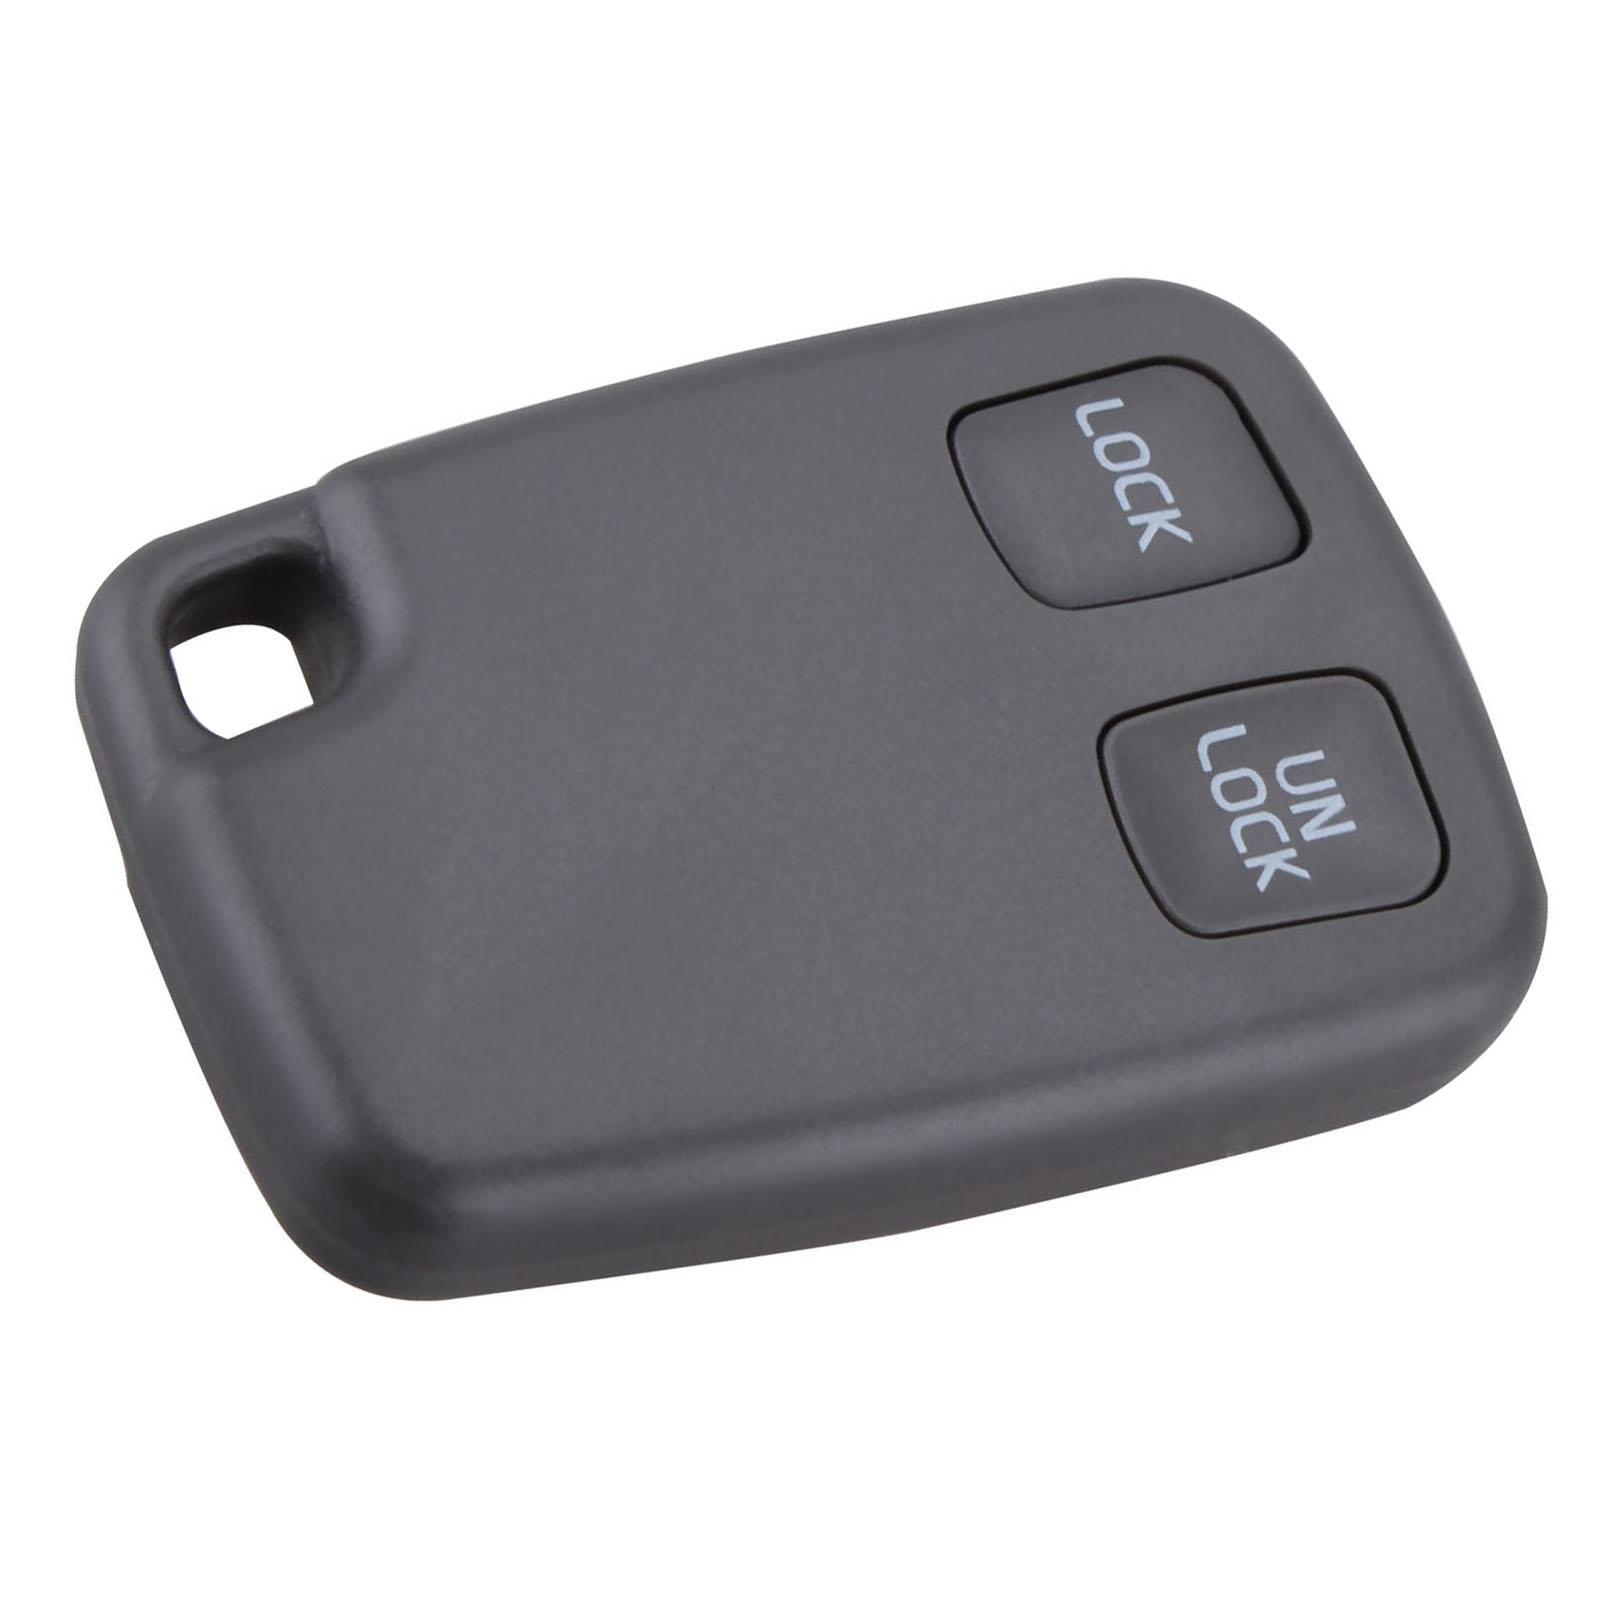 2 Buttons Car Remote <font><b>Key</b></font> Blank Fob Case Fit For <font><b>VOLVO</b></font> C70 <font><b>S40</b></font> S60 S70 S80 S90 V40 V70 V90 XC70 XC90 <font><b>Replacement</b></font> Car <font><b>Key</b></font> Shell image